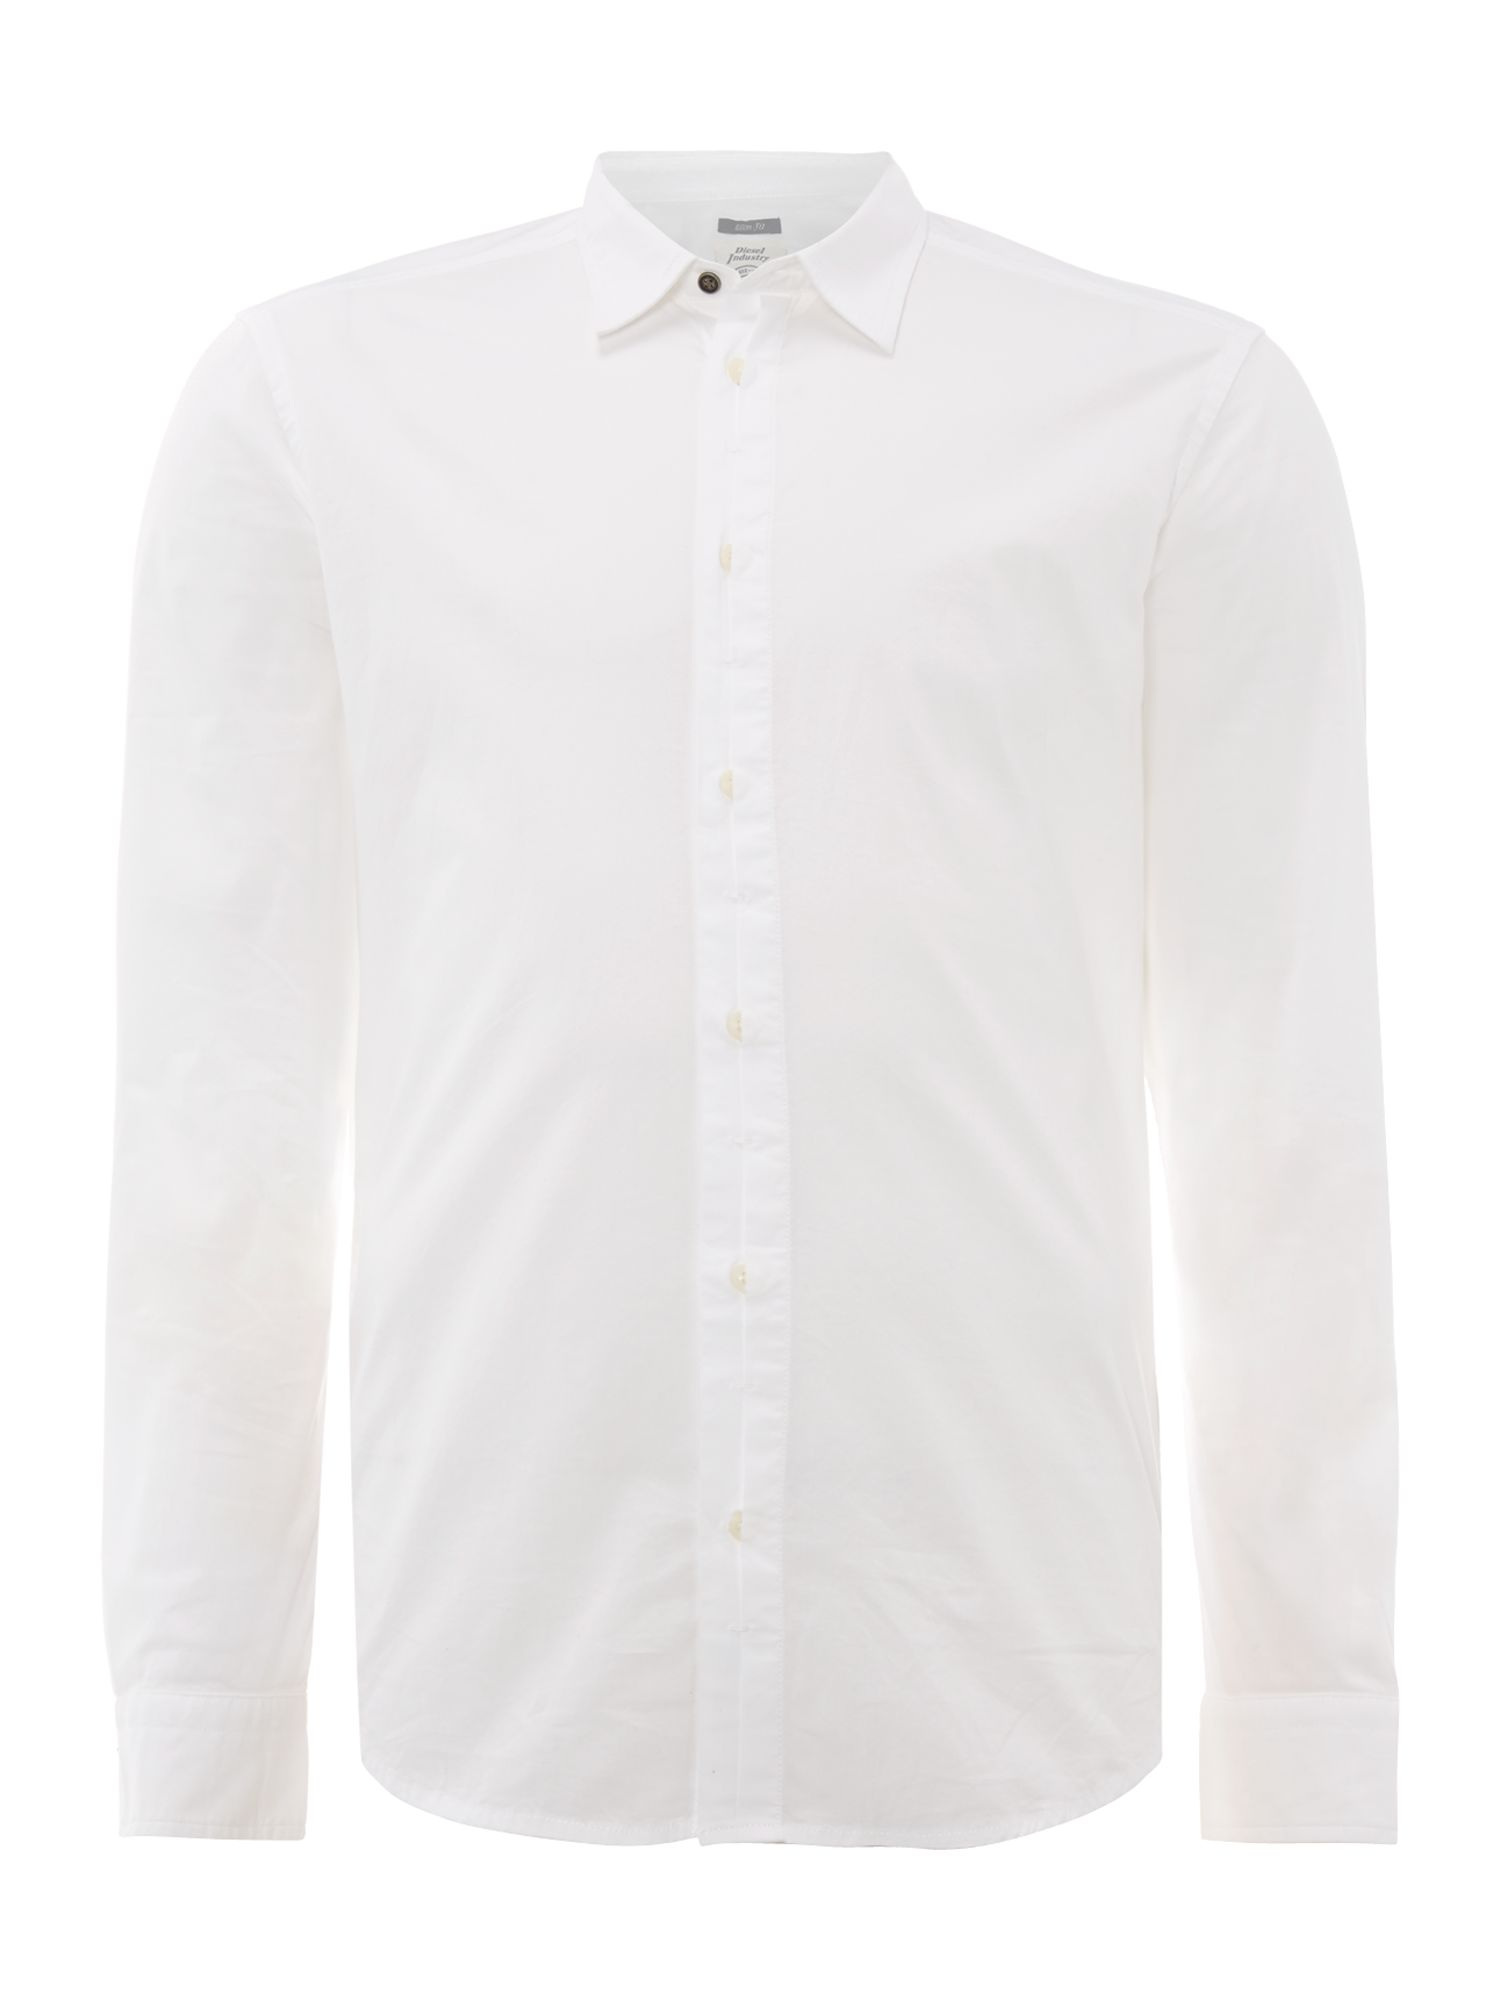 Long sleeve cotton poplin shirt